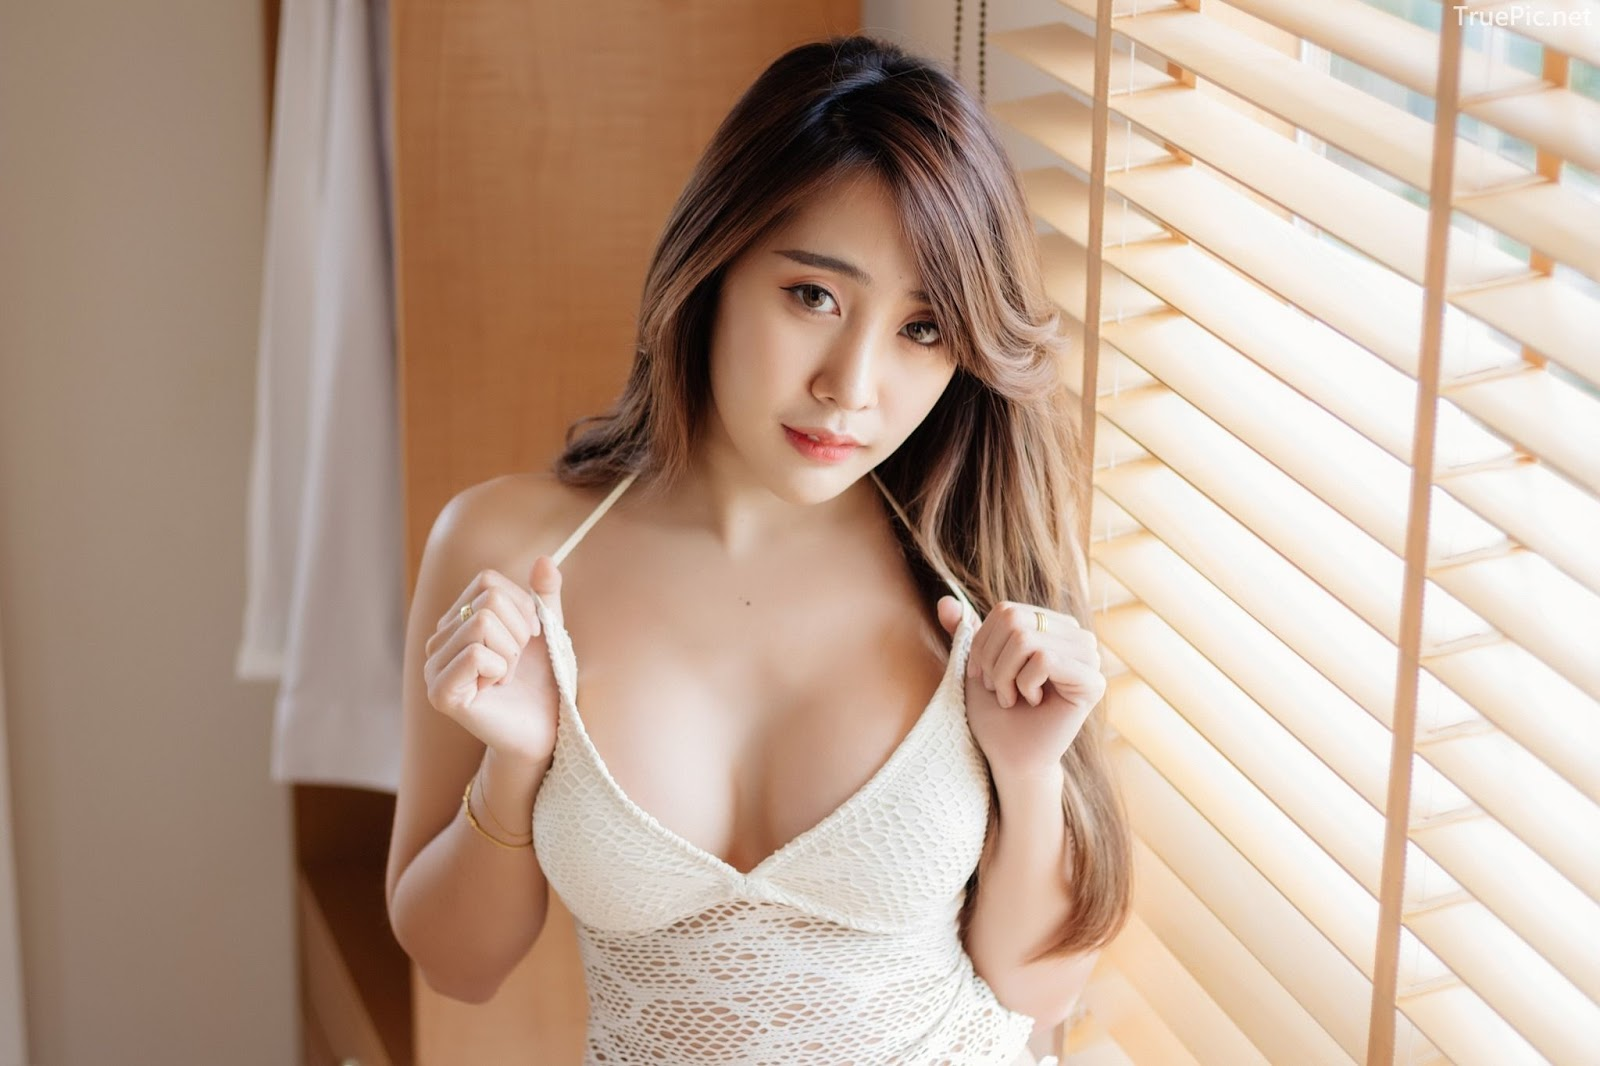 Thailand model Suneta Ngachalvy so sexy with album Bring me a Donut - Picture 4